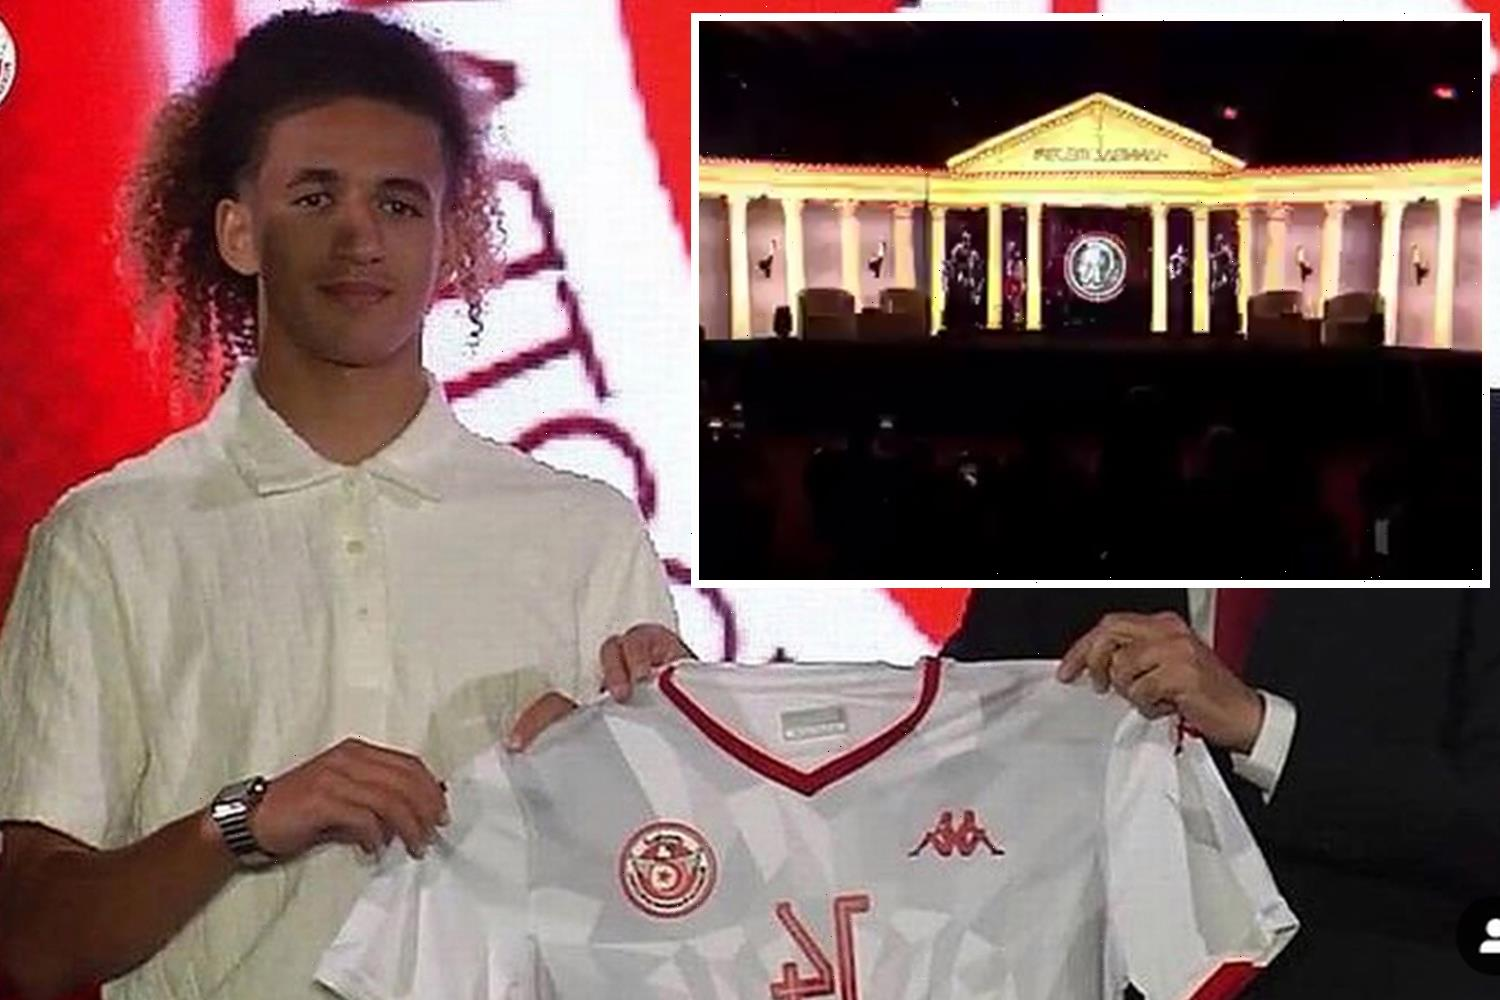 Man Utd wonderkid Hannibal Mejbri given bizarre glitzy unveiling by Tunisia after switching allegiance from France